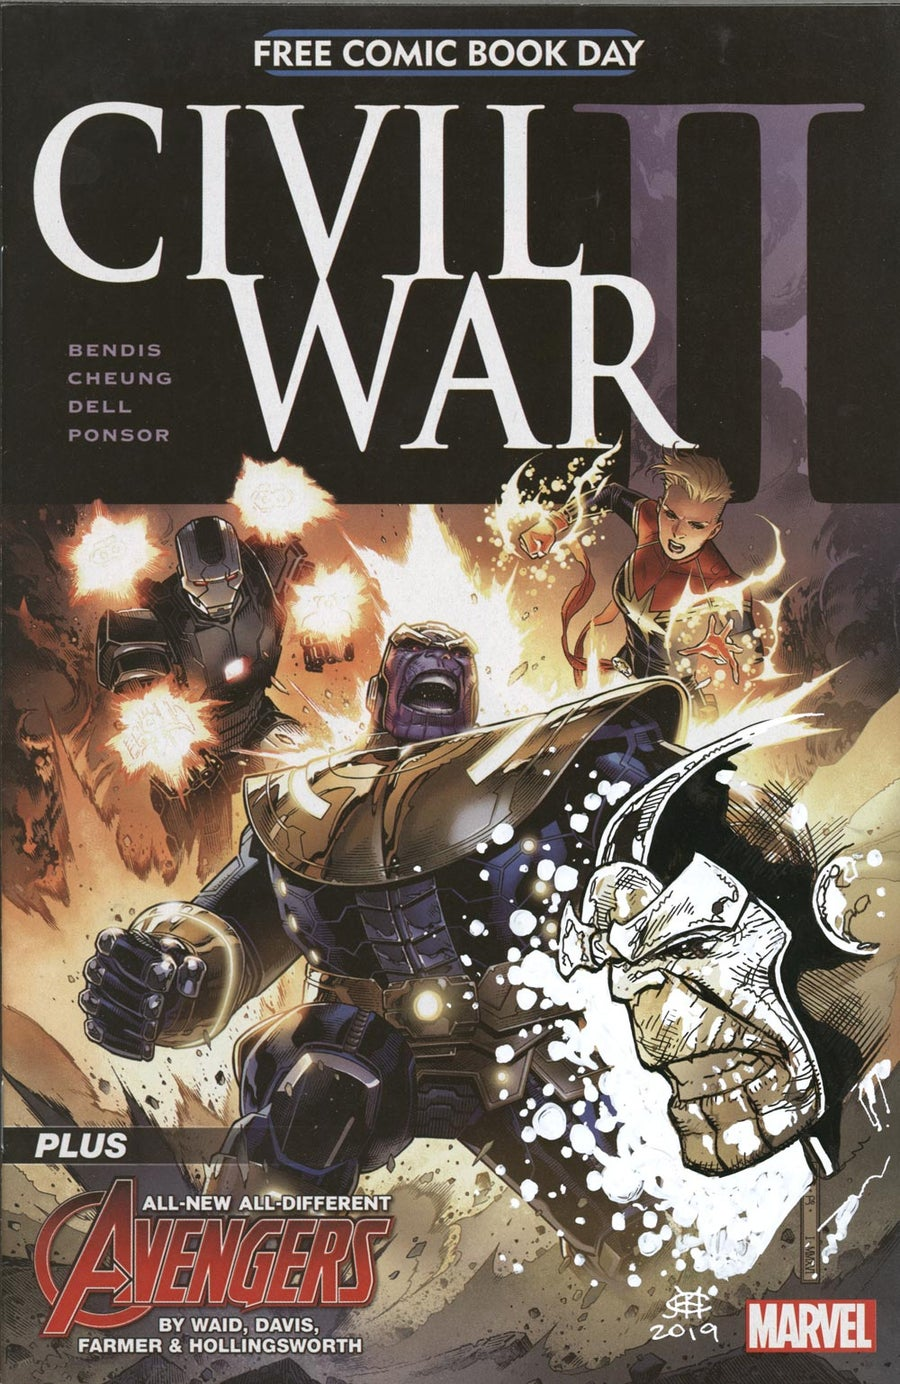 Image of CIVIL WAR II_FCBD - THANOS Remarque